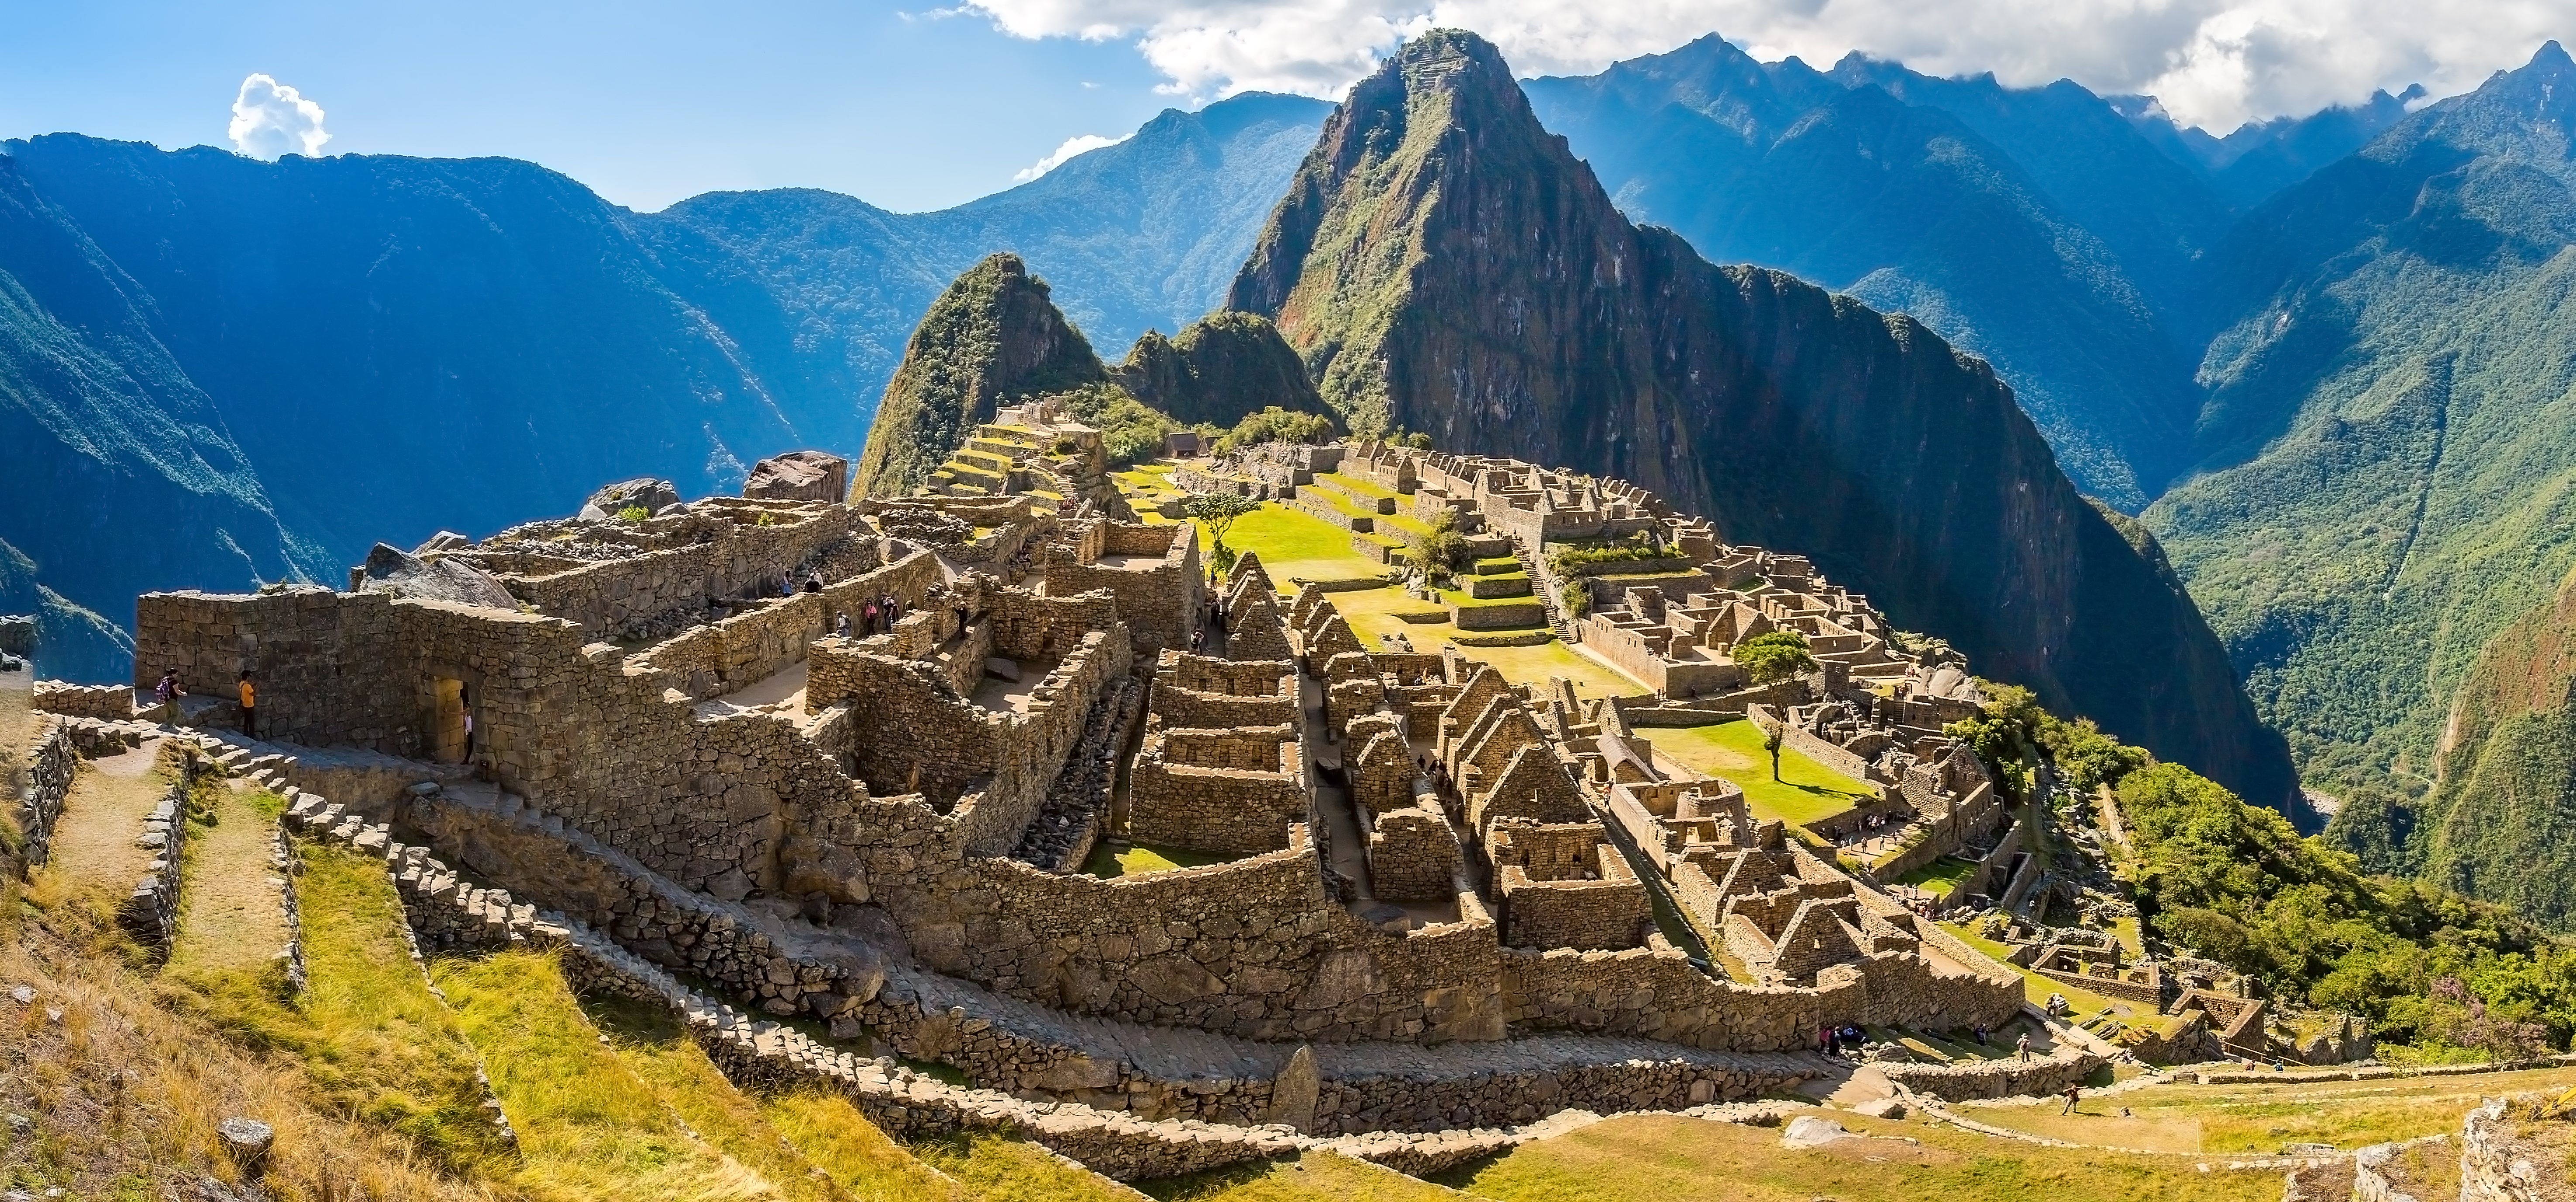 Image shows historic city of Machu Picchu with terraced city in foreground and mountain ranges in background